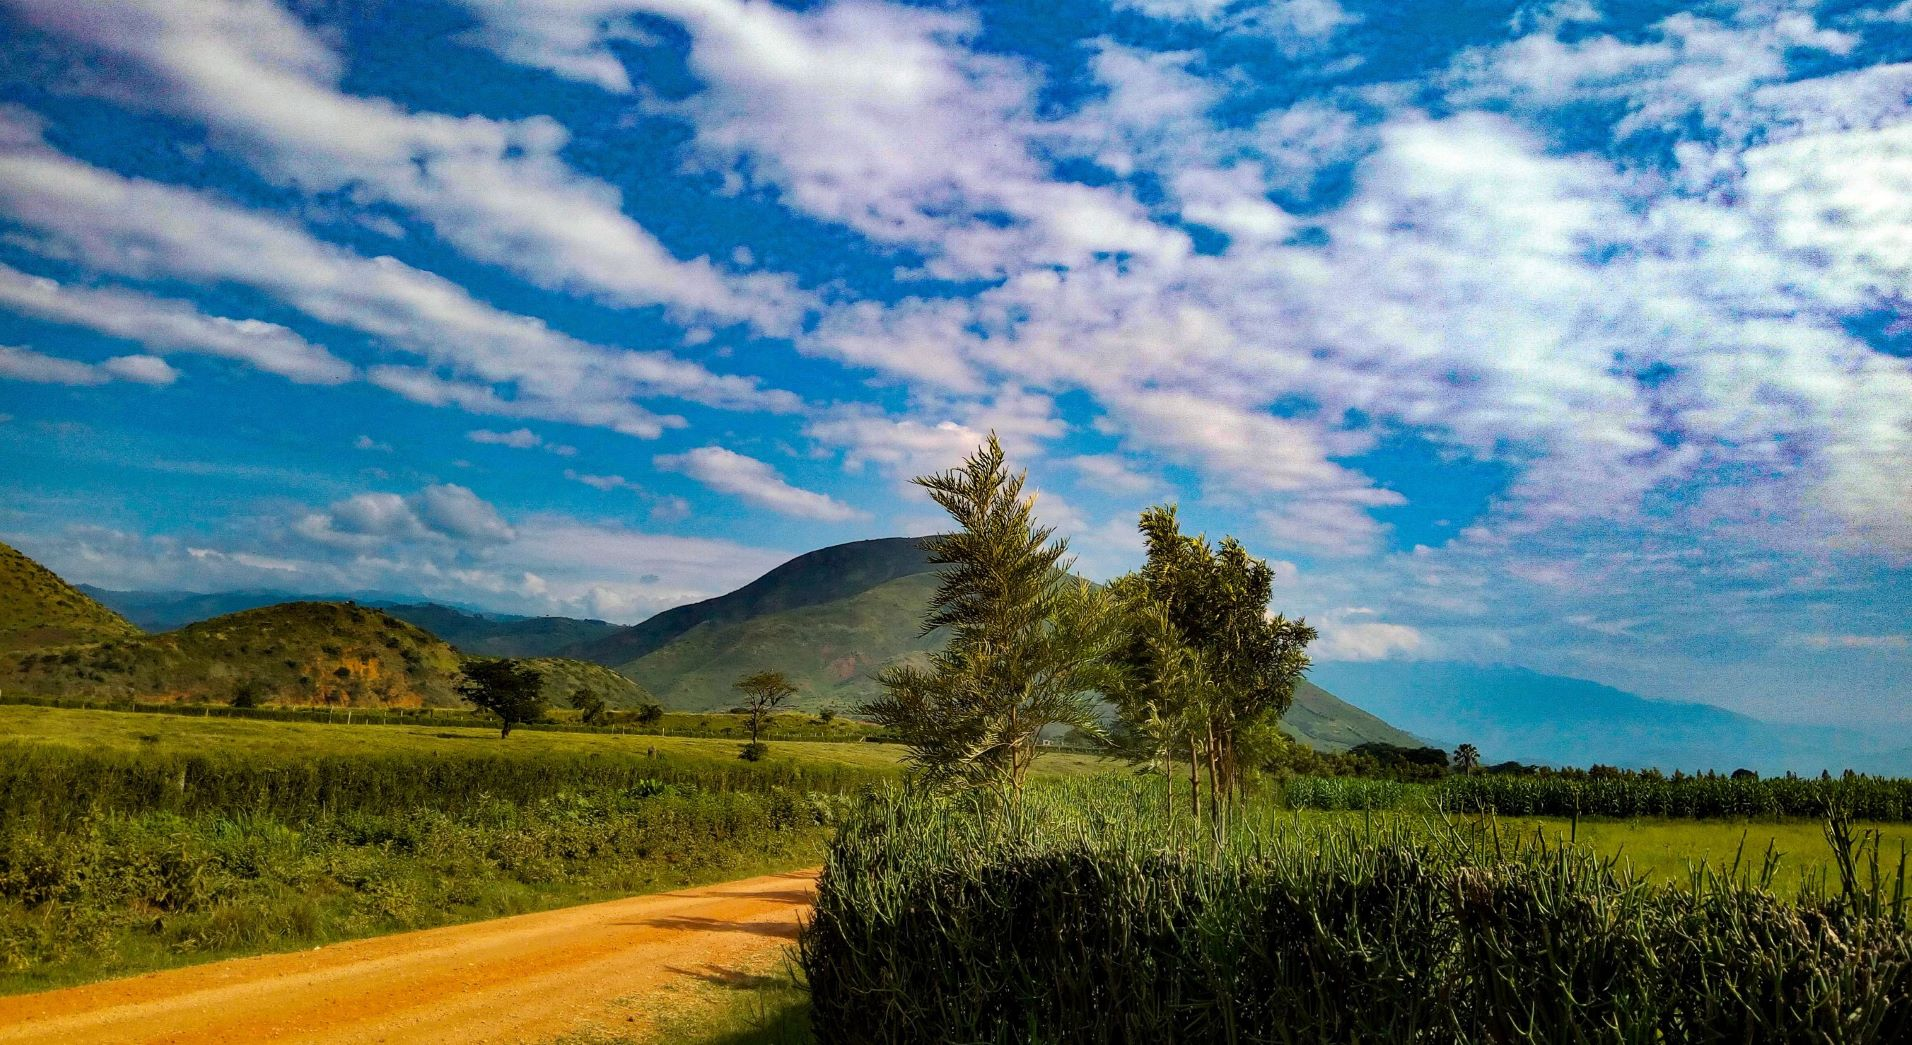 A mountain in Uganda under a bright blue sky with clouds.